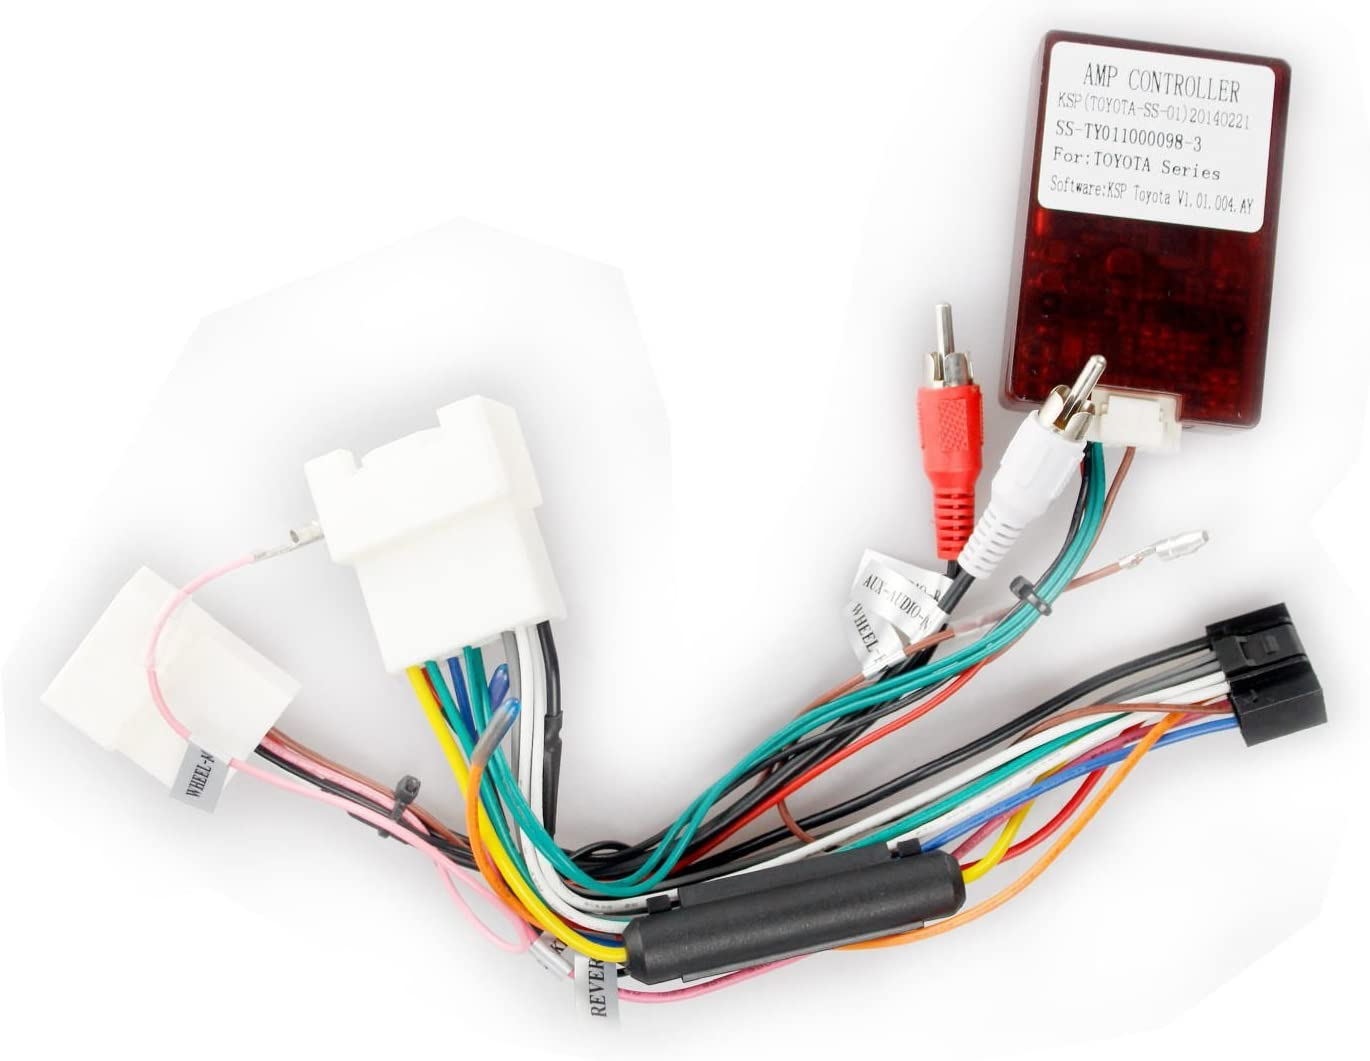 Amazon.com: hizpo Adapter Harness Fit for JBL Speakers System Car Stereo in Toyota  Camry Corolla RAV4: GPS & NavigationAmazon.com